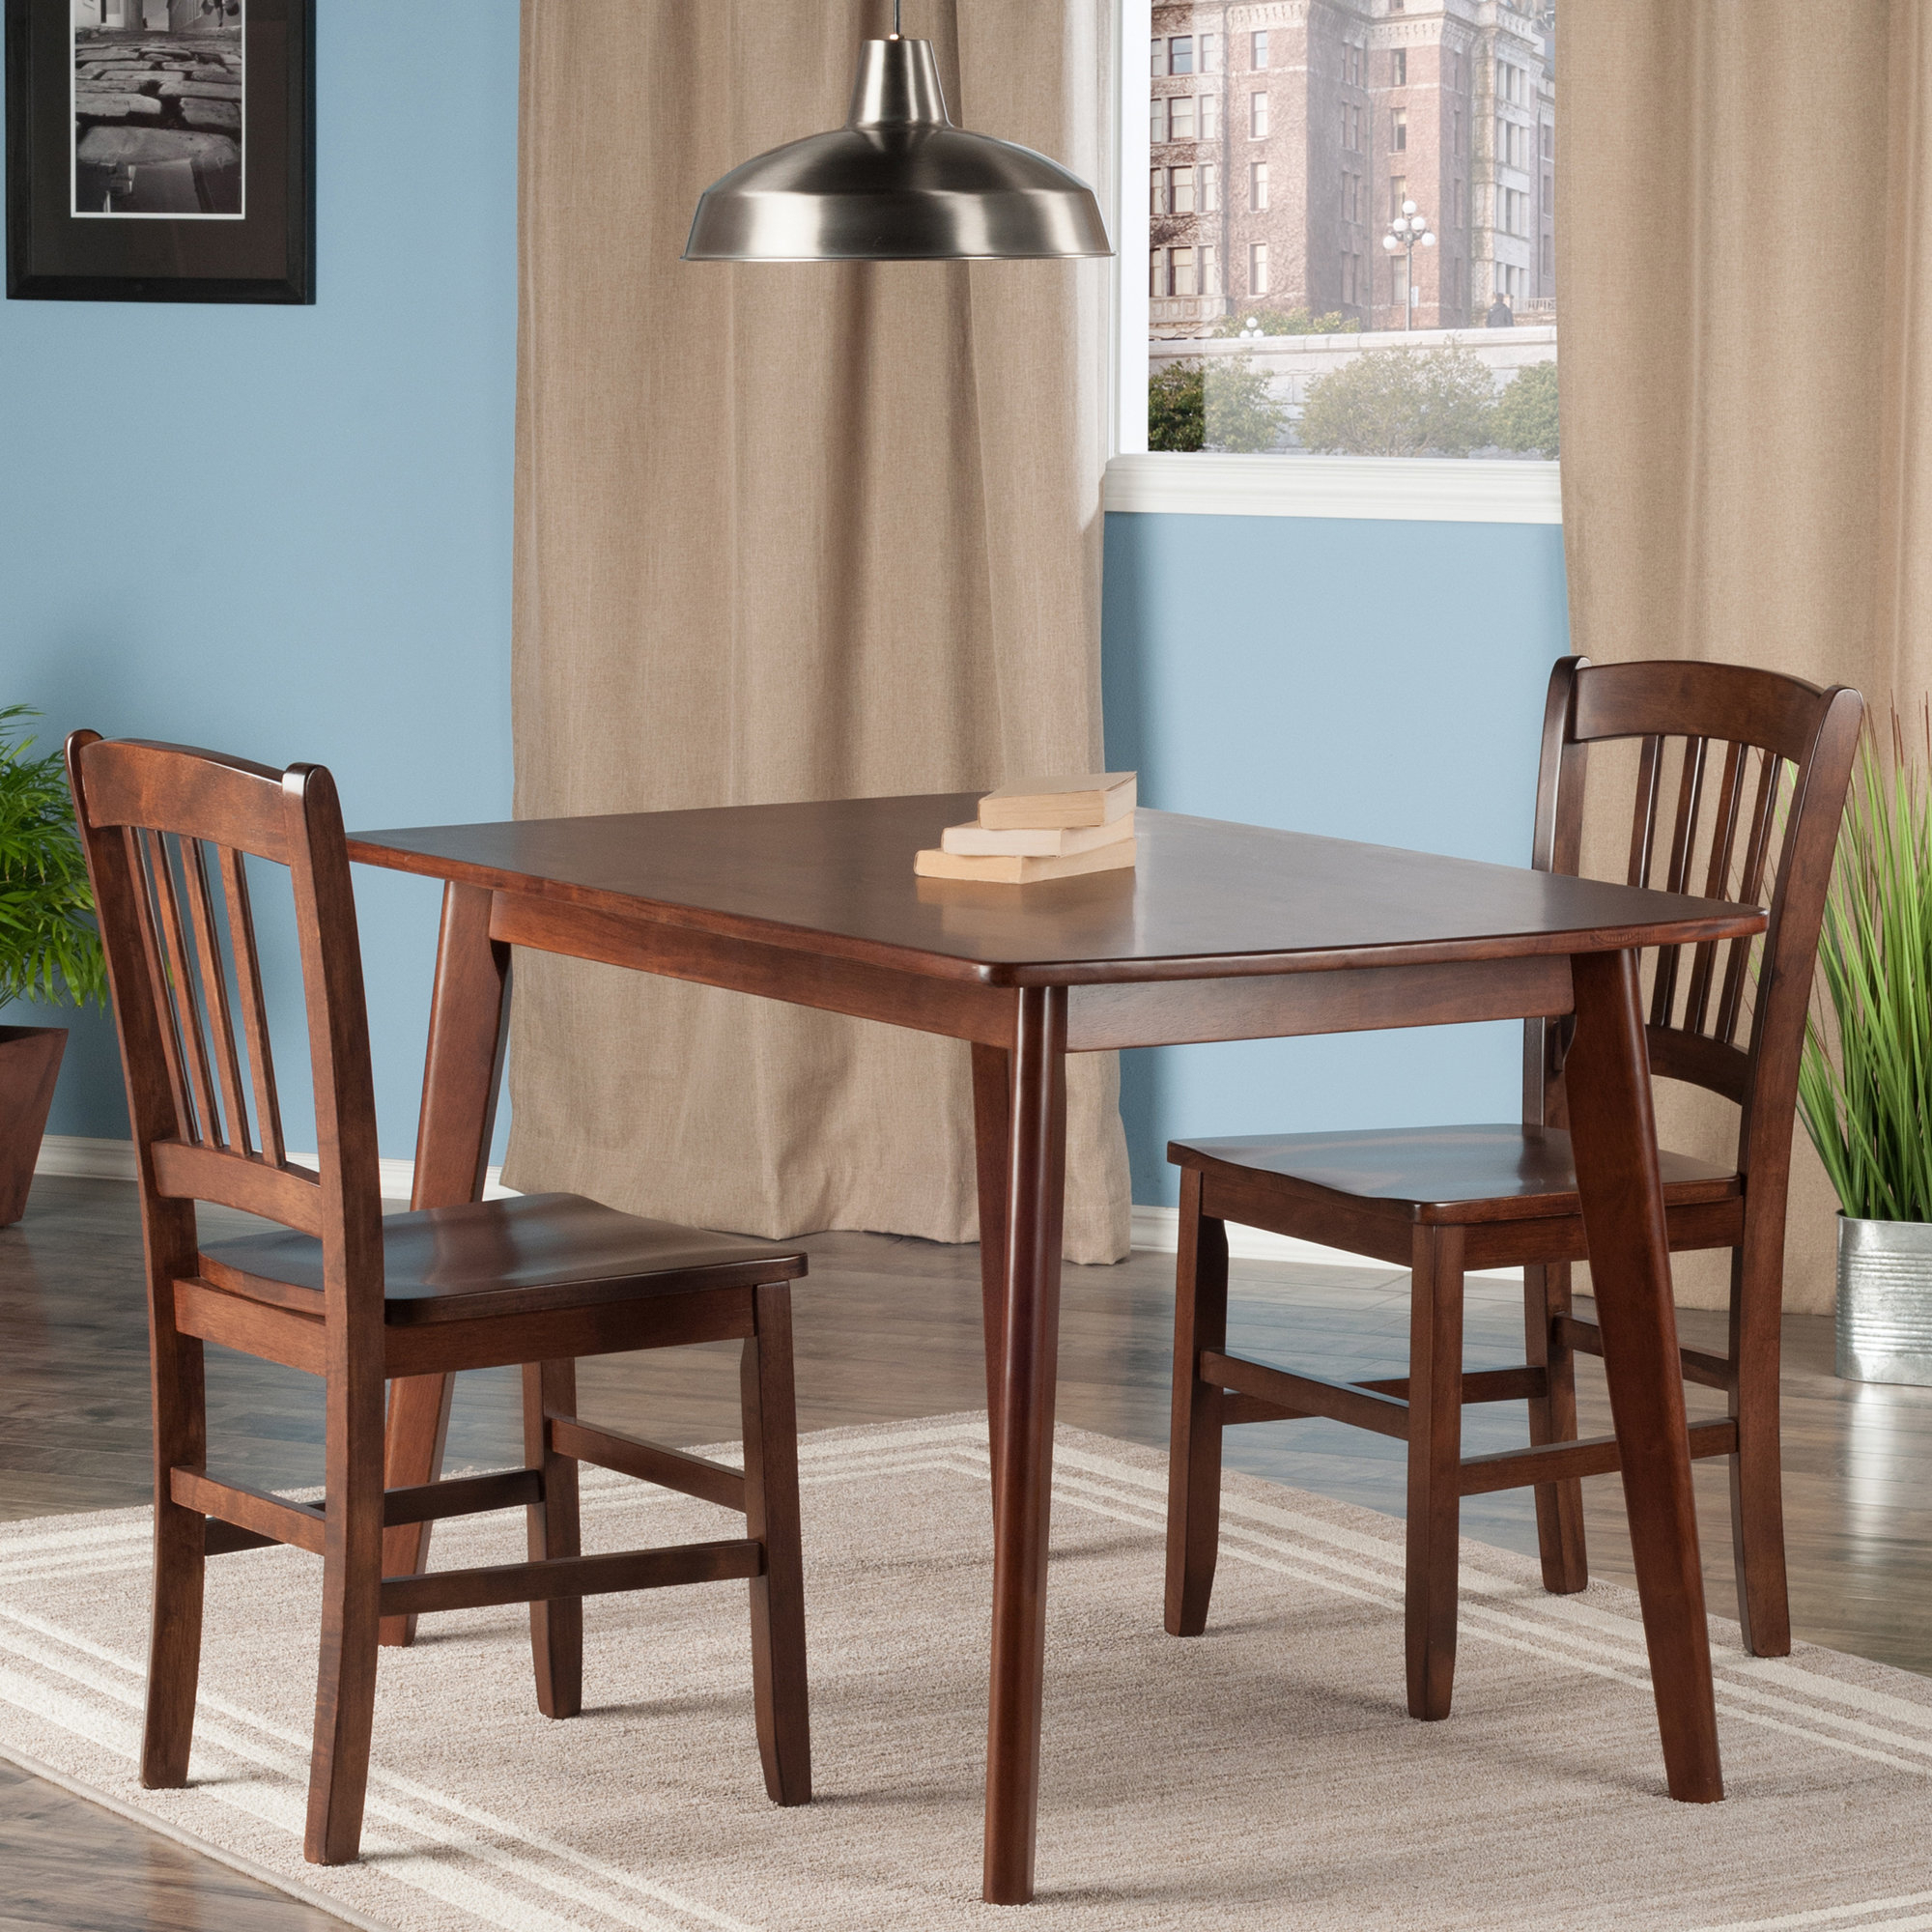 Details About Winston Porter Guynn 3 Piece Solid Wood Dining Set Wnst1156 Inside Current Yedinak 5 Piece Solid Wood Dining Sets (Gallery 11 of 20)